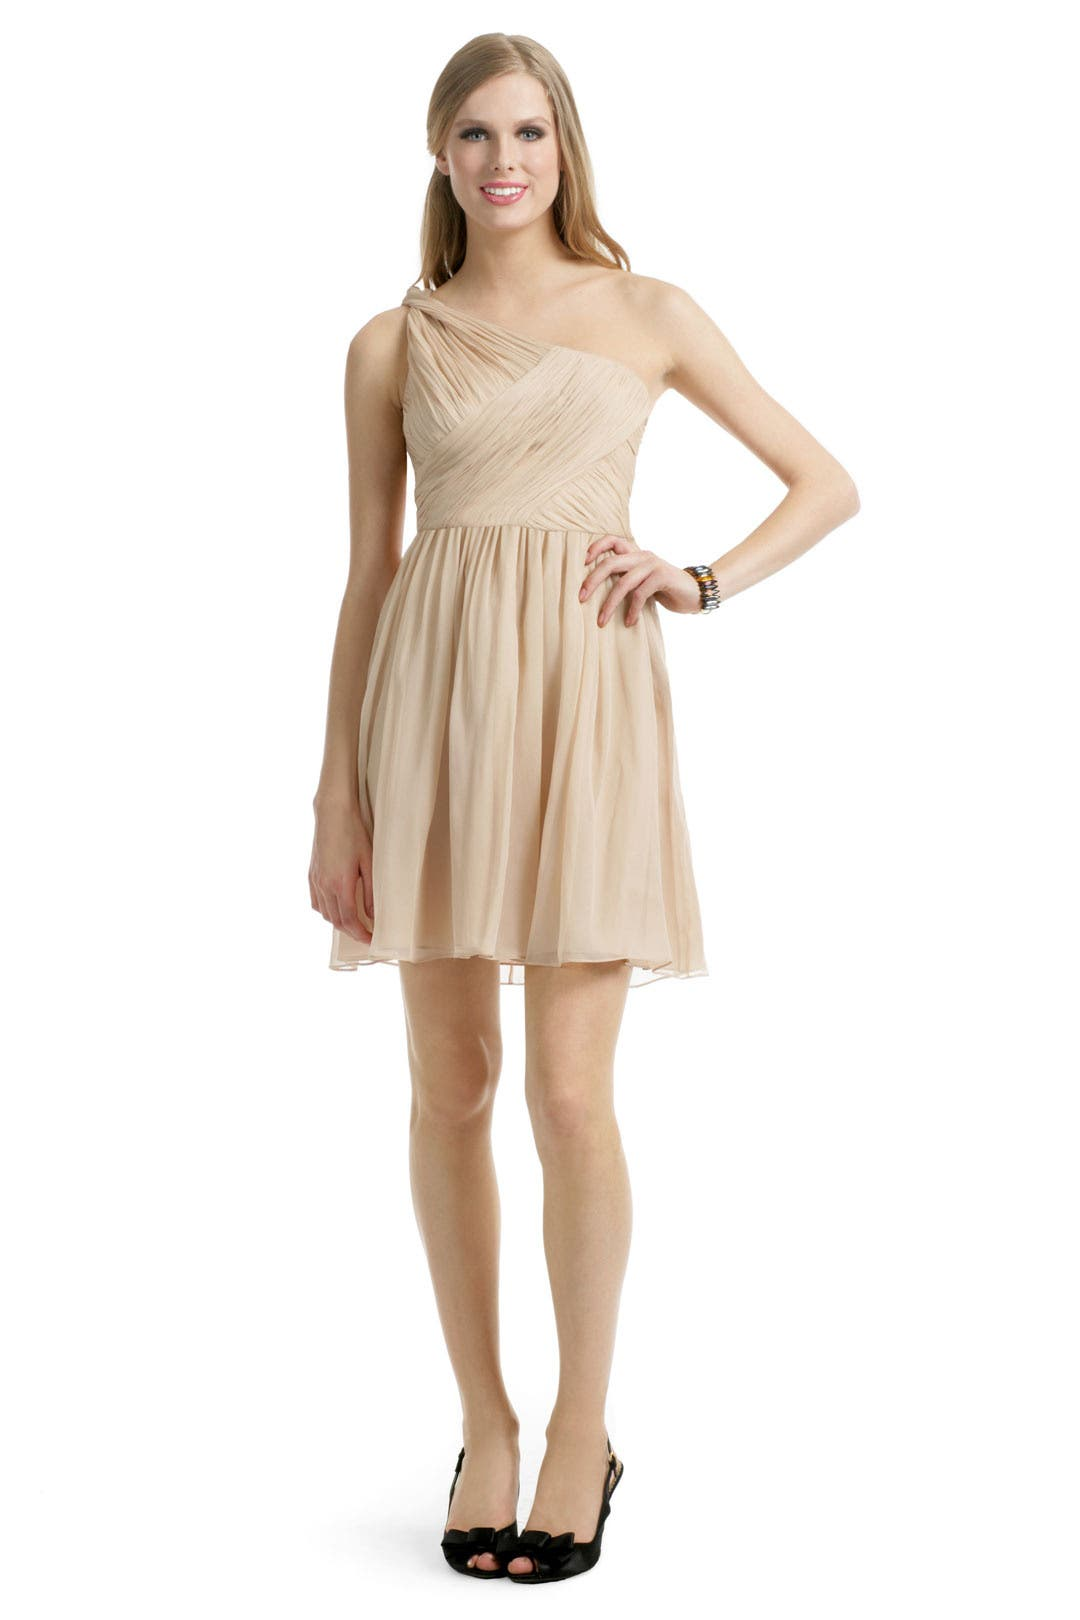 Camel Chiffon Dress by Tibi